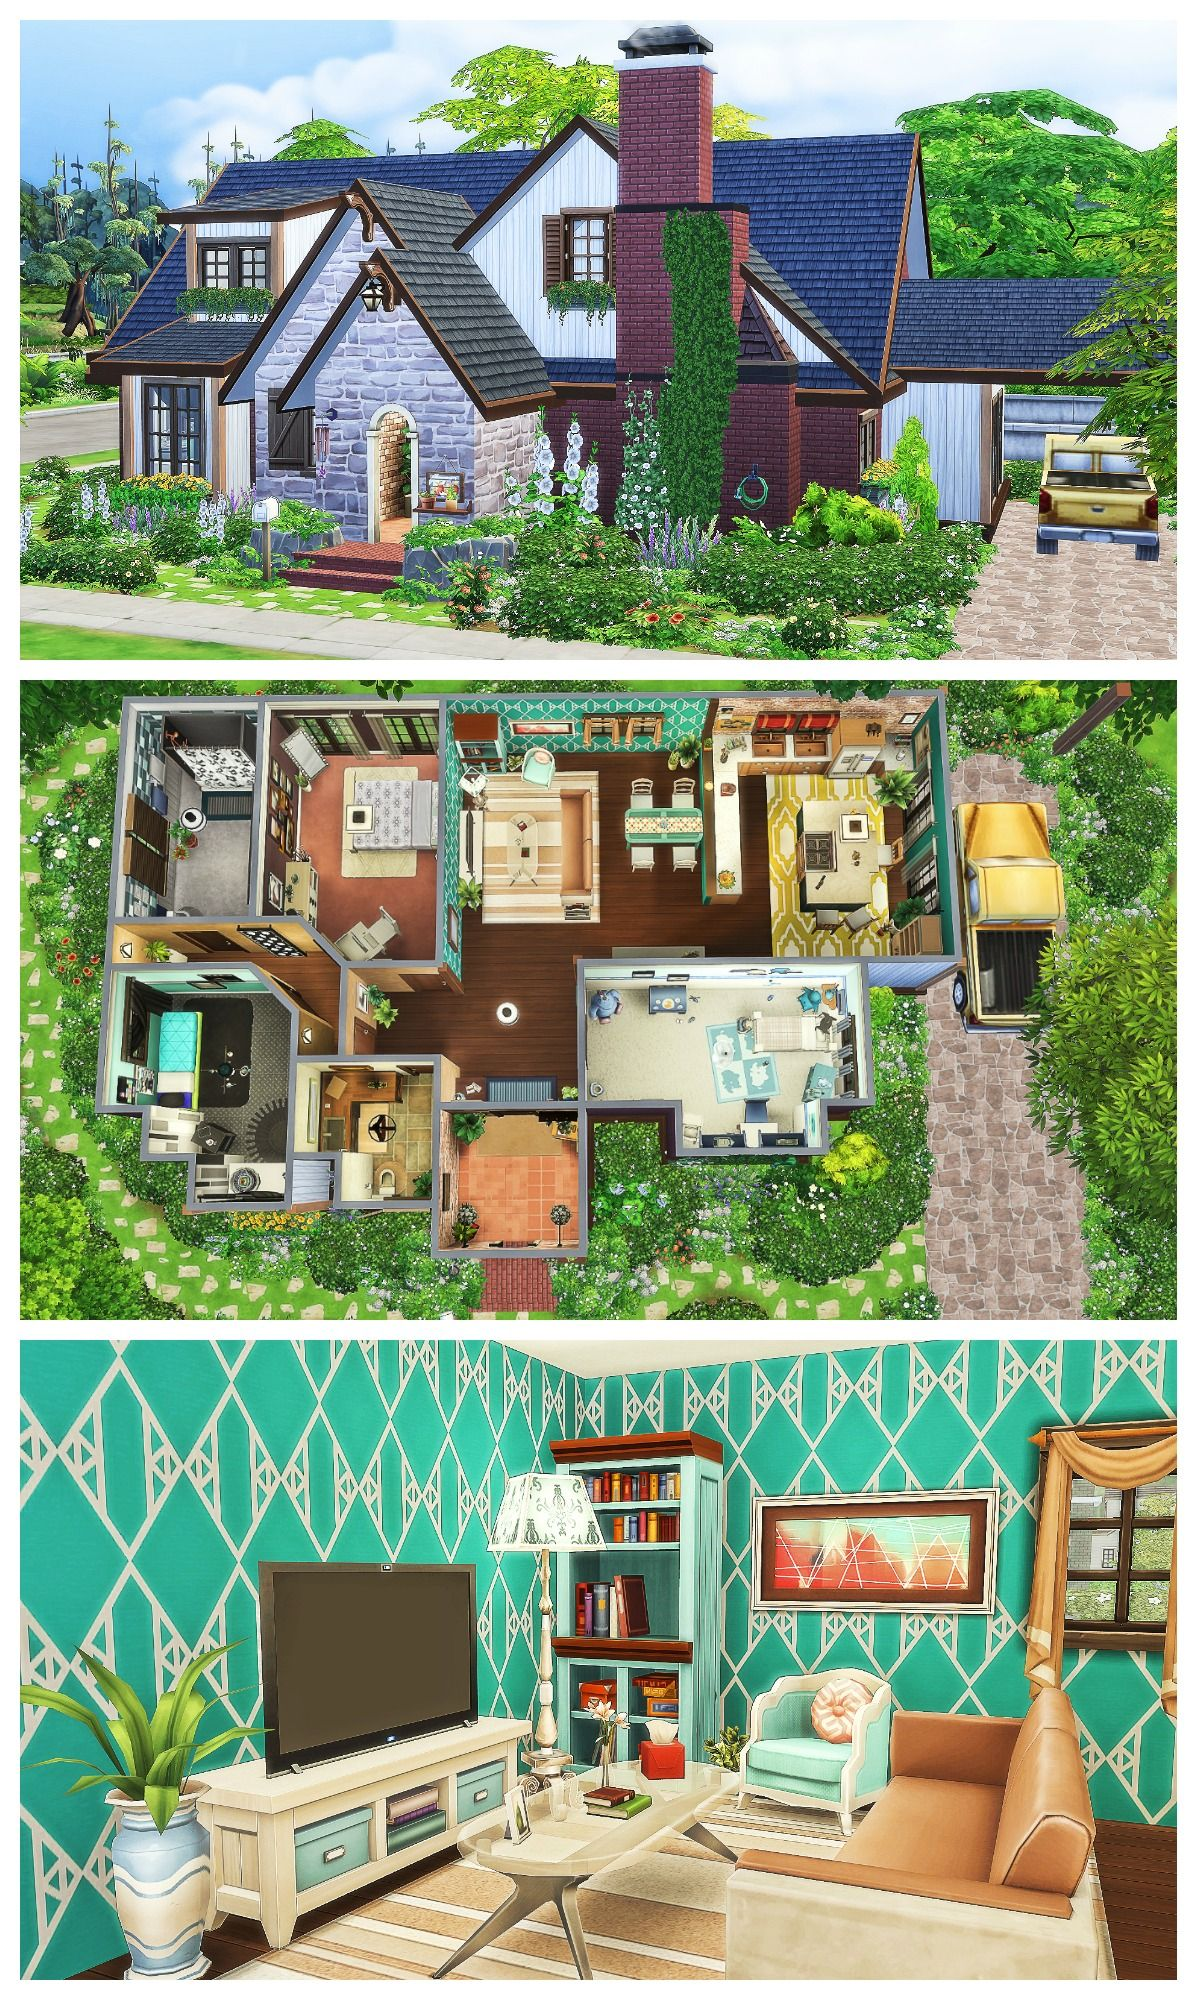 Family Home Sims 4 Speed Build Sims House Sims Building Sims 4 Houses